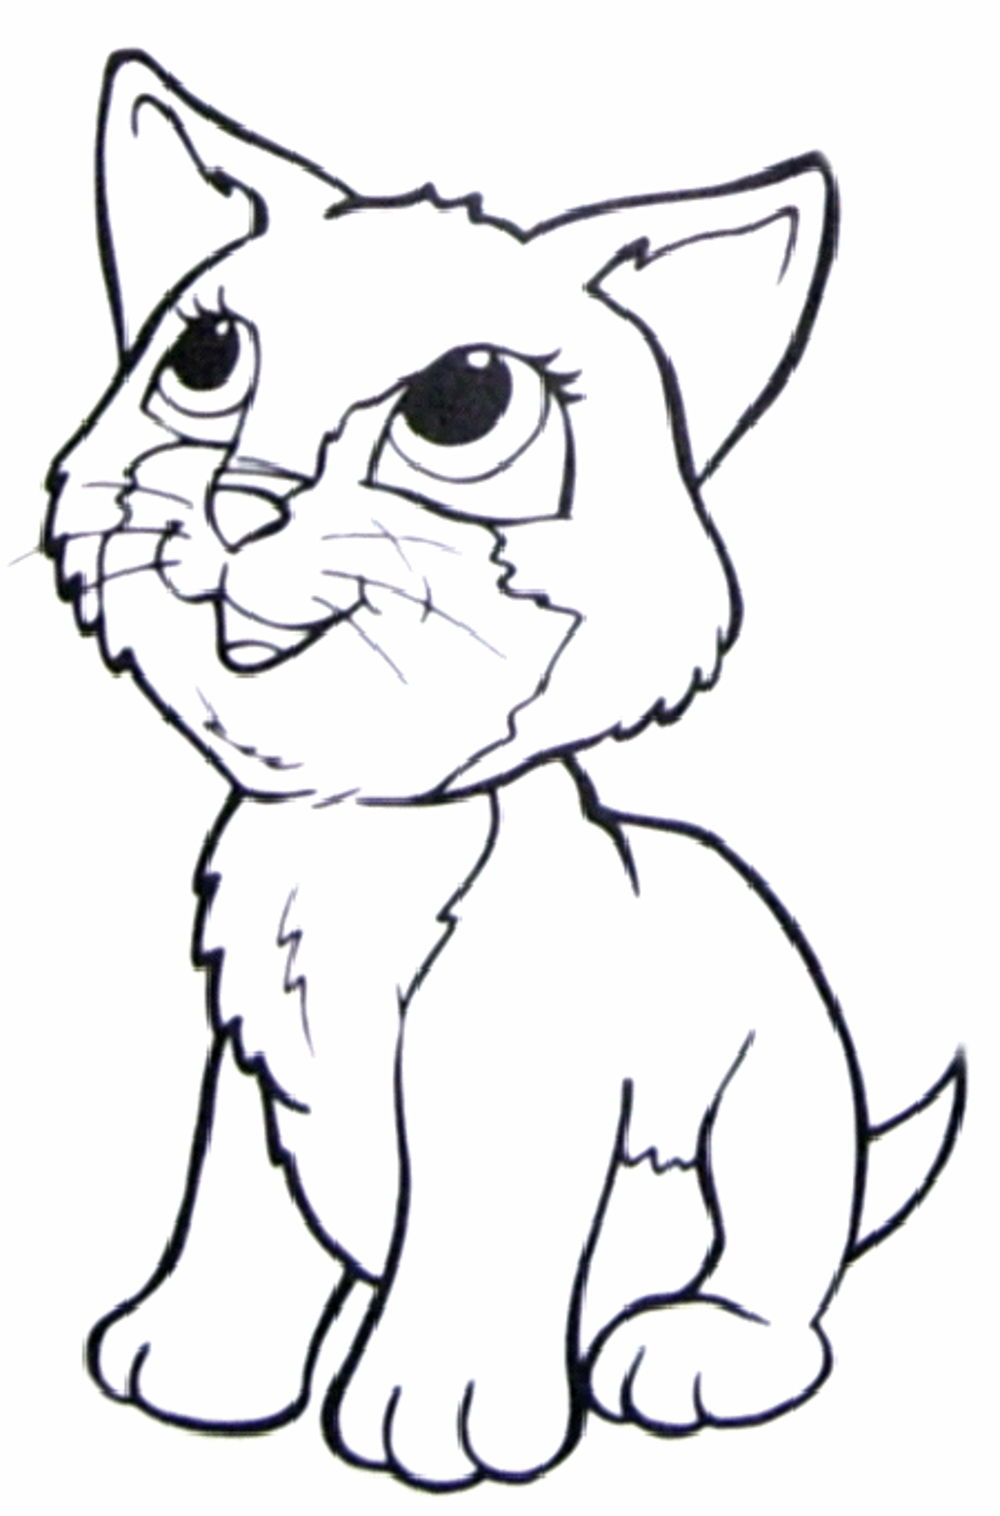 1000x1516 Kitty Litter Tray Doodle Cat And The Hat Warrior Cats So Breed